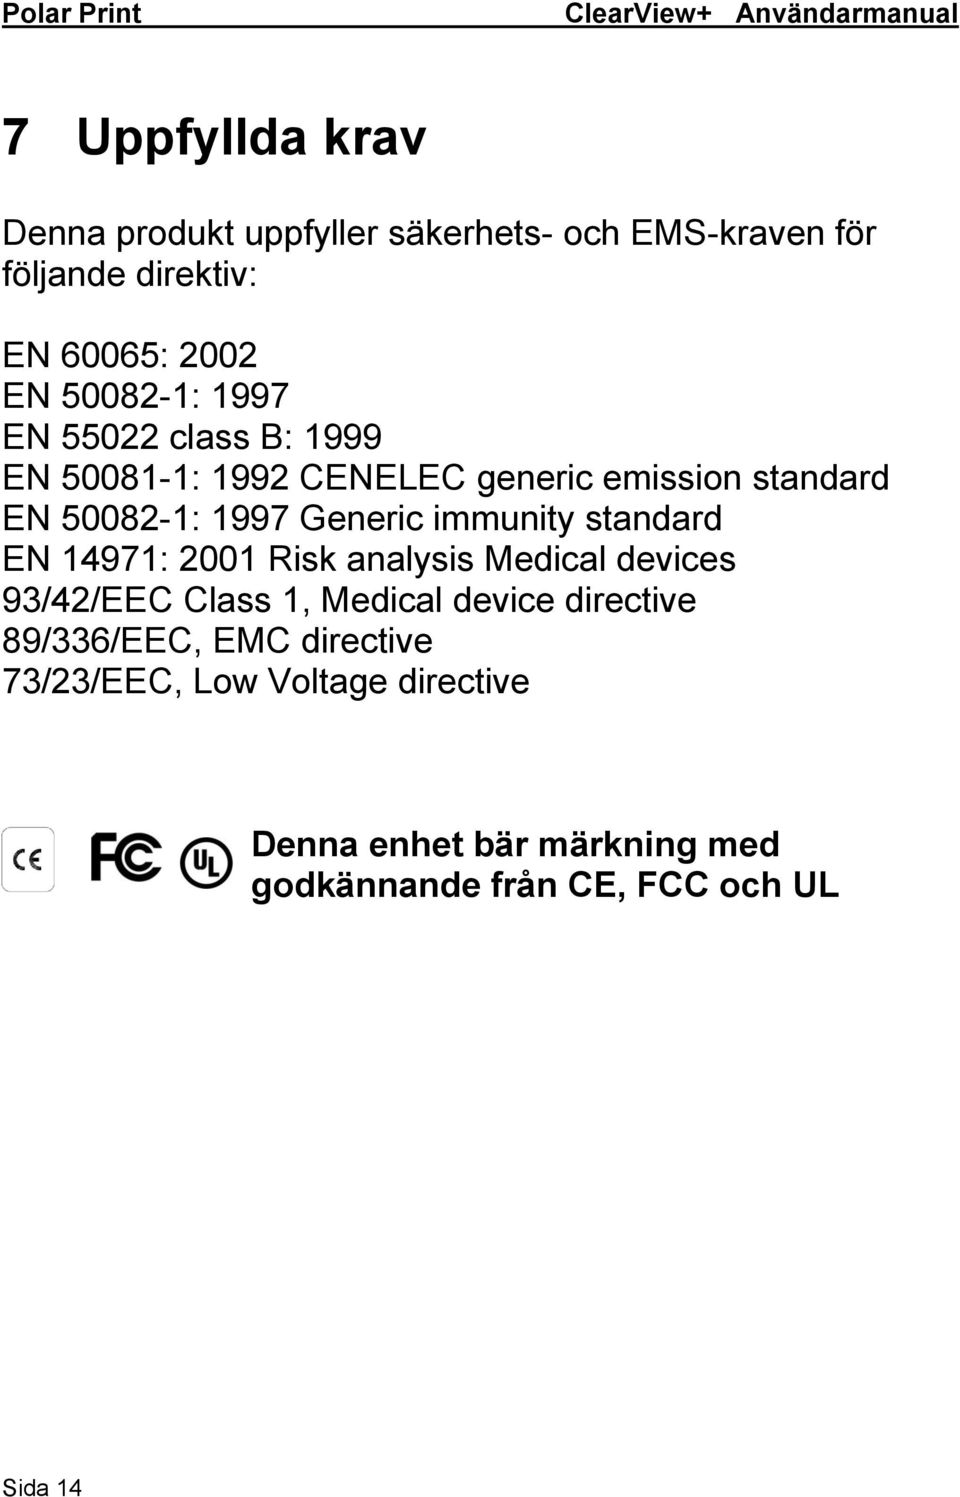 immunity standard EN 14971: 2001 Risk analysis Medical devices 93/42/EEC Class 1, Medical device directive